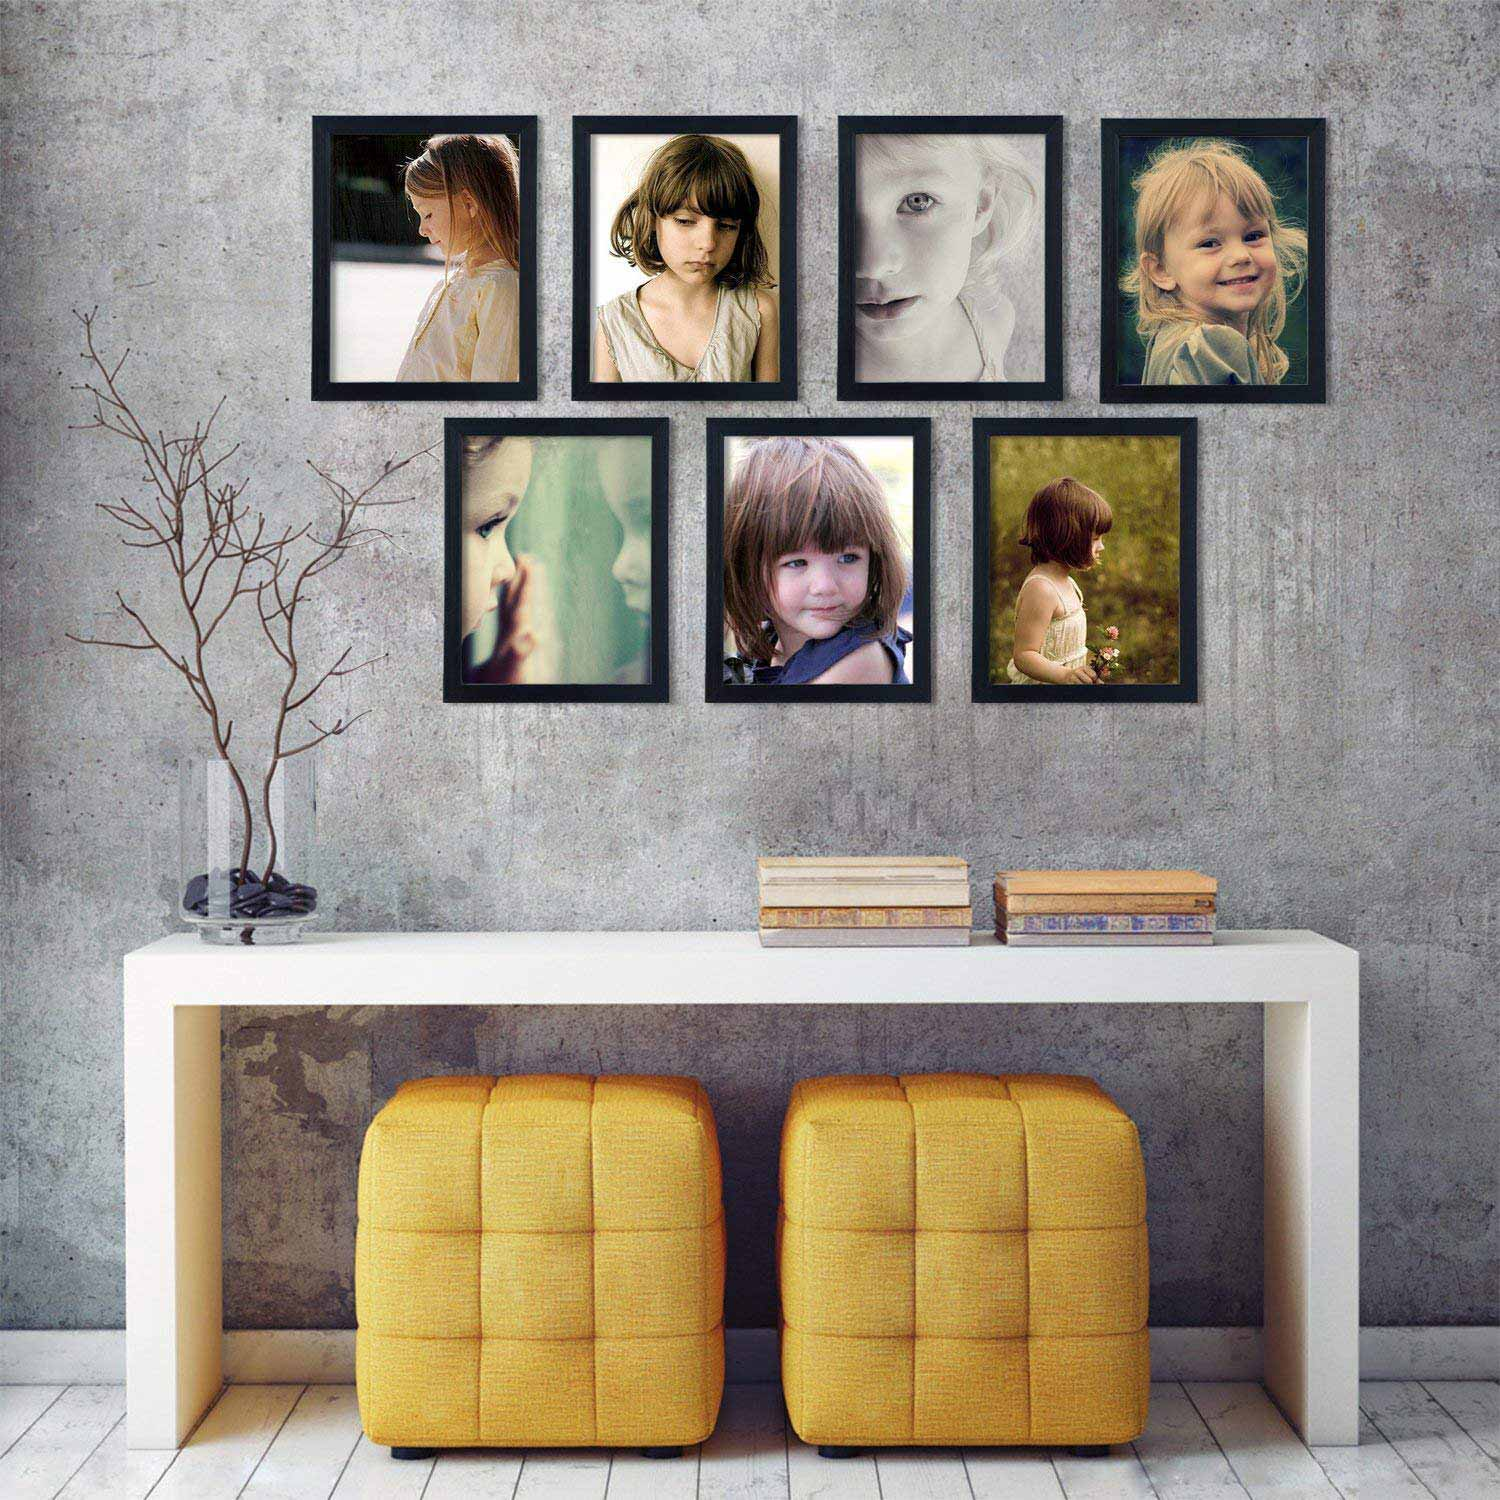 Living room wall filled with picture frames